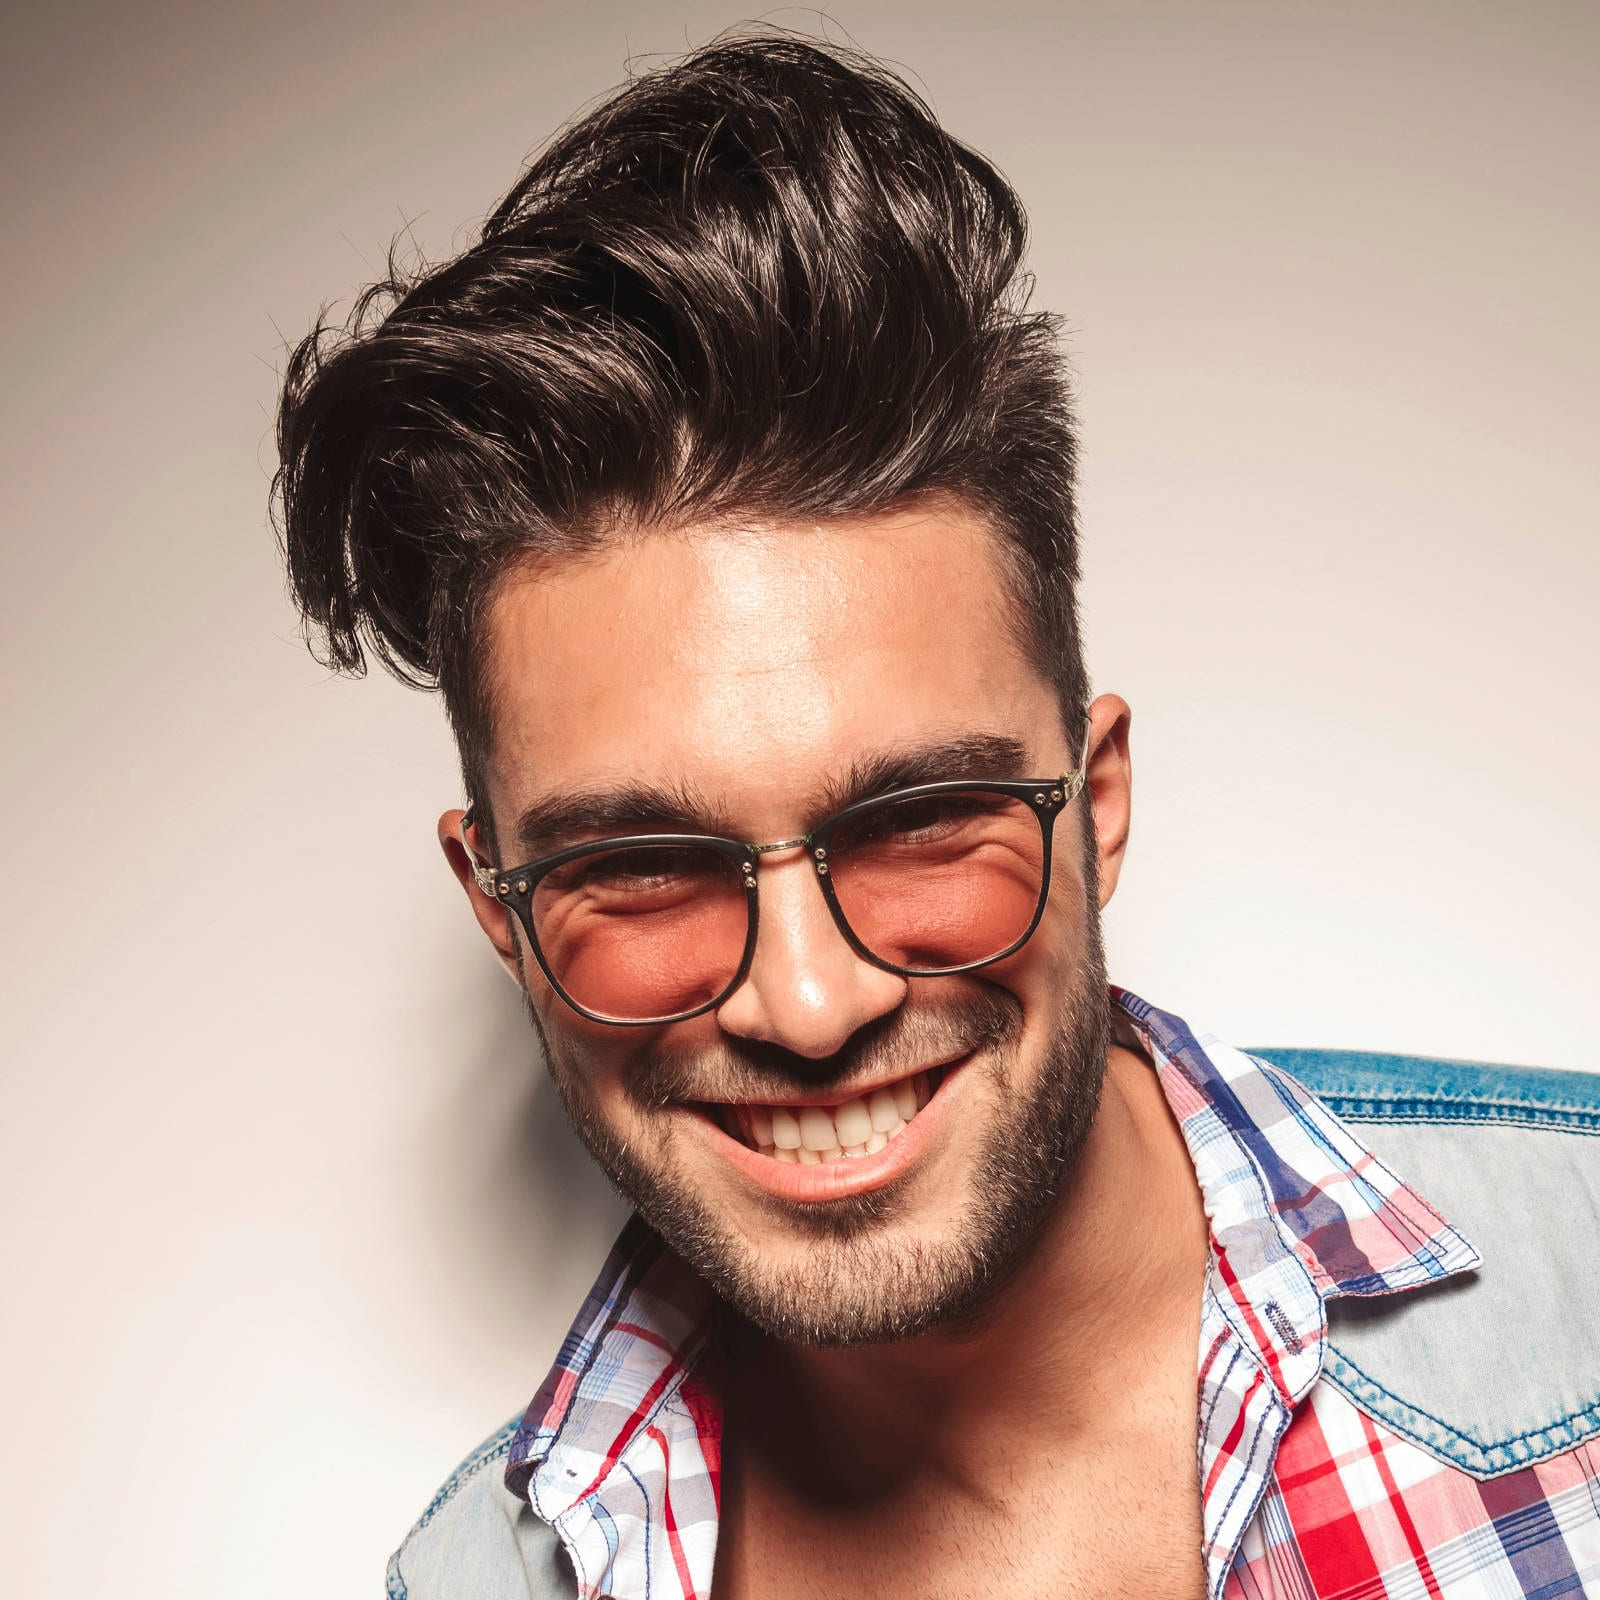 haircut for men with glasses - square